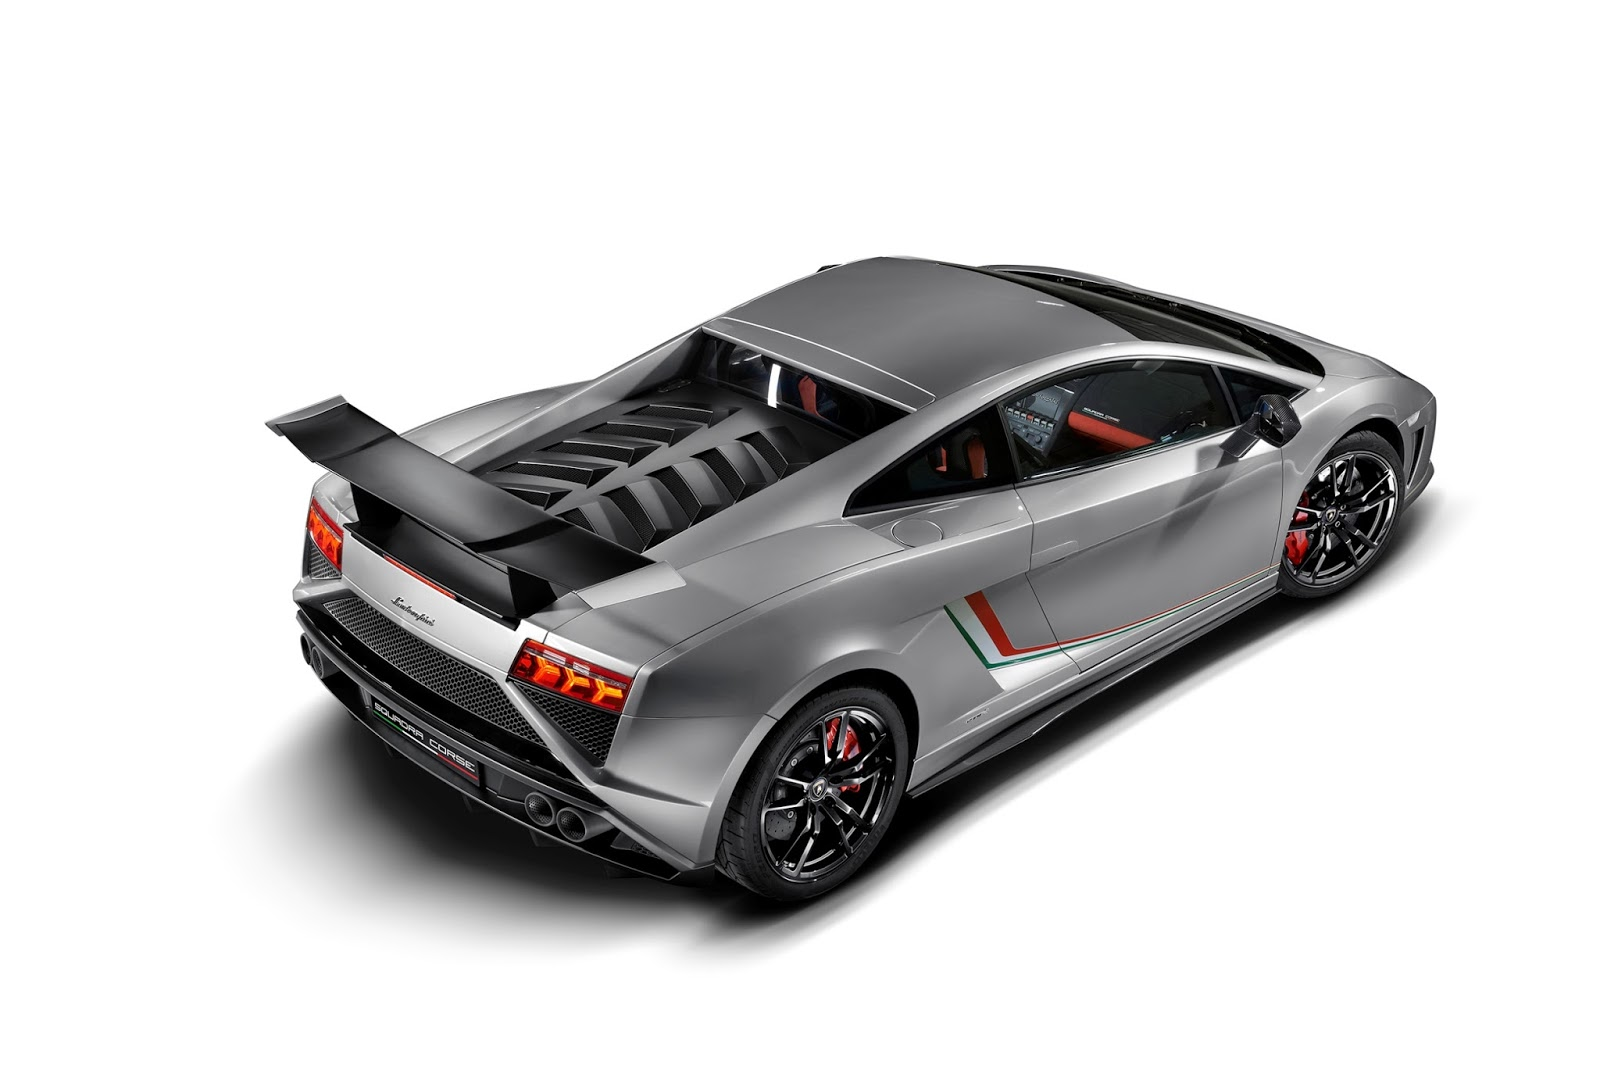 Lamborghini Gallardo The Lp 570 4 Squadra Corse The Latest Lambo